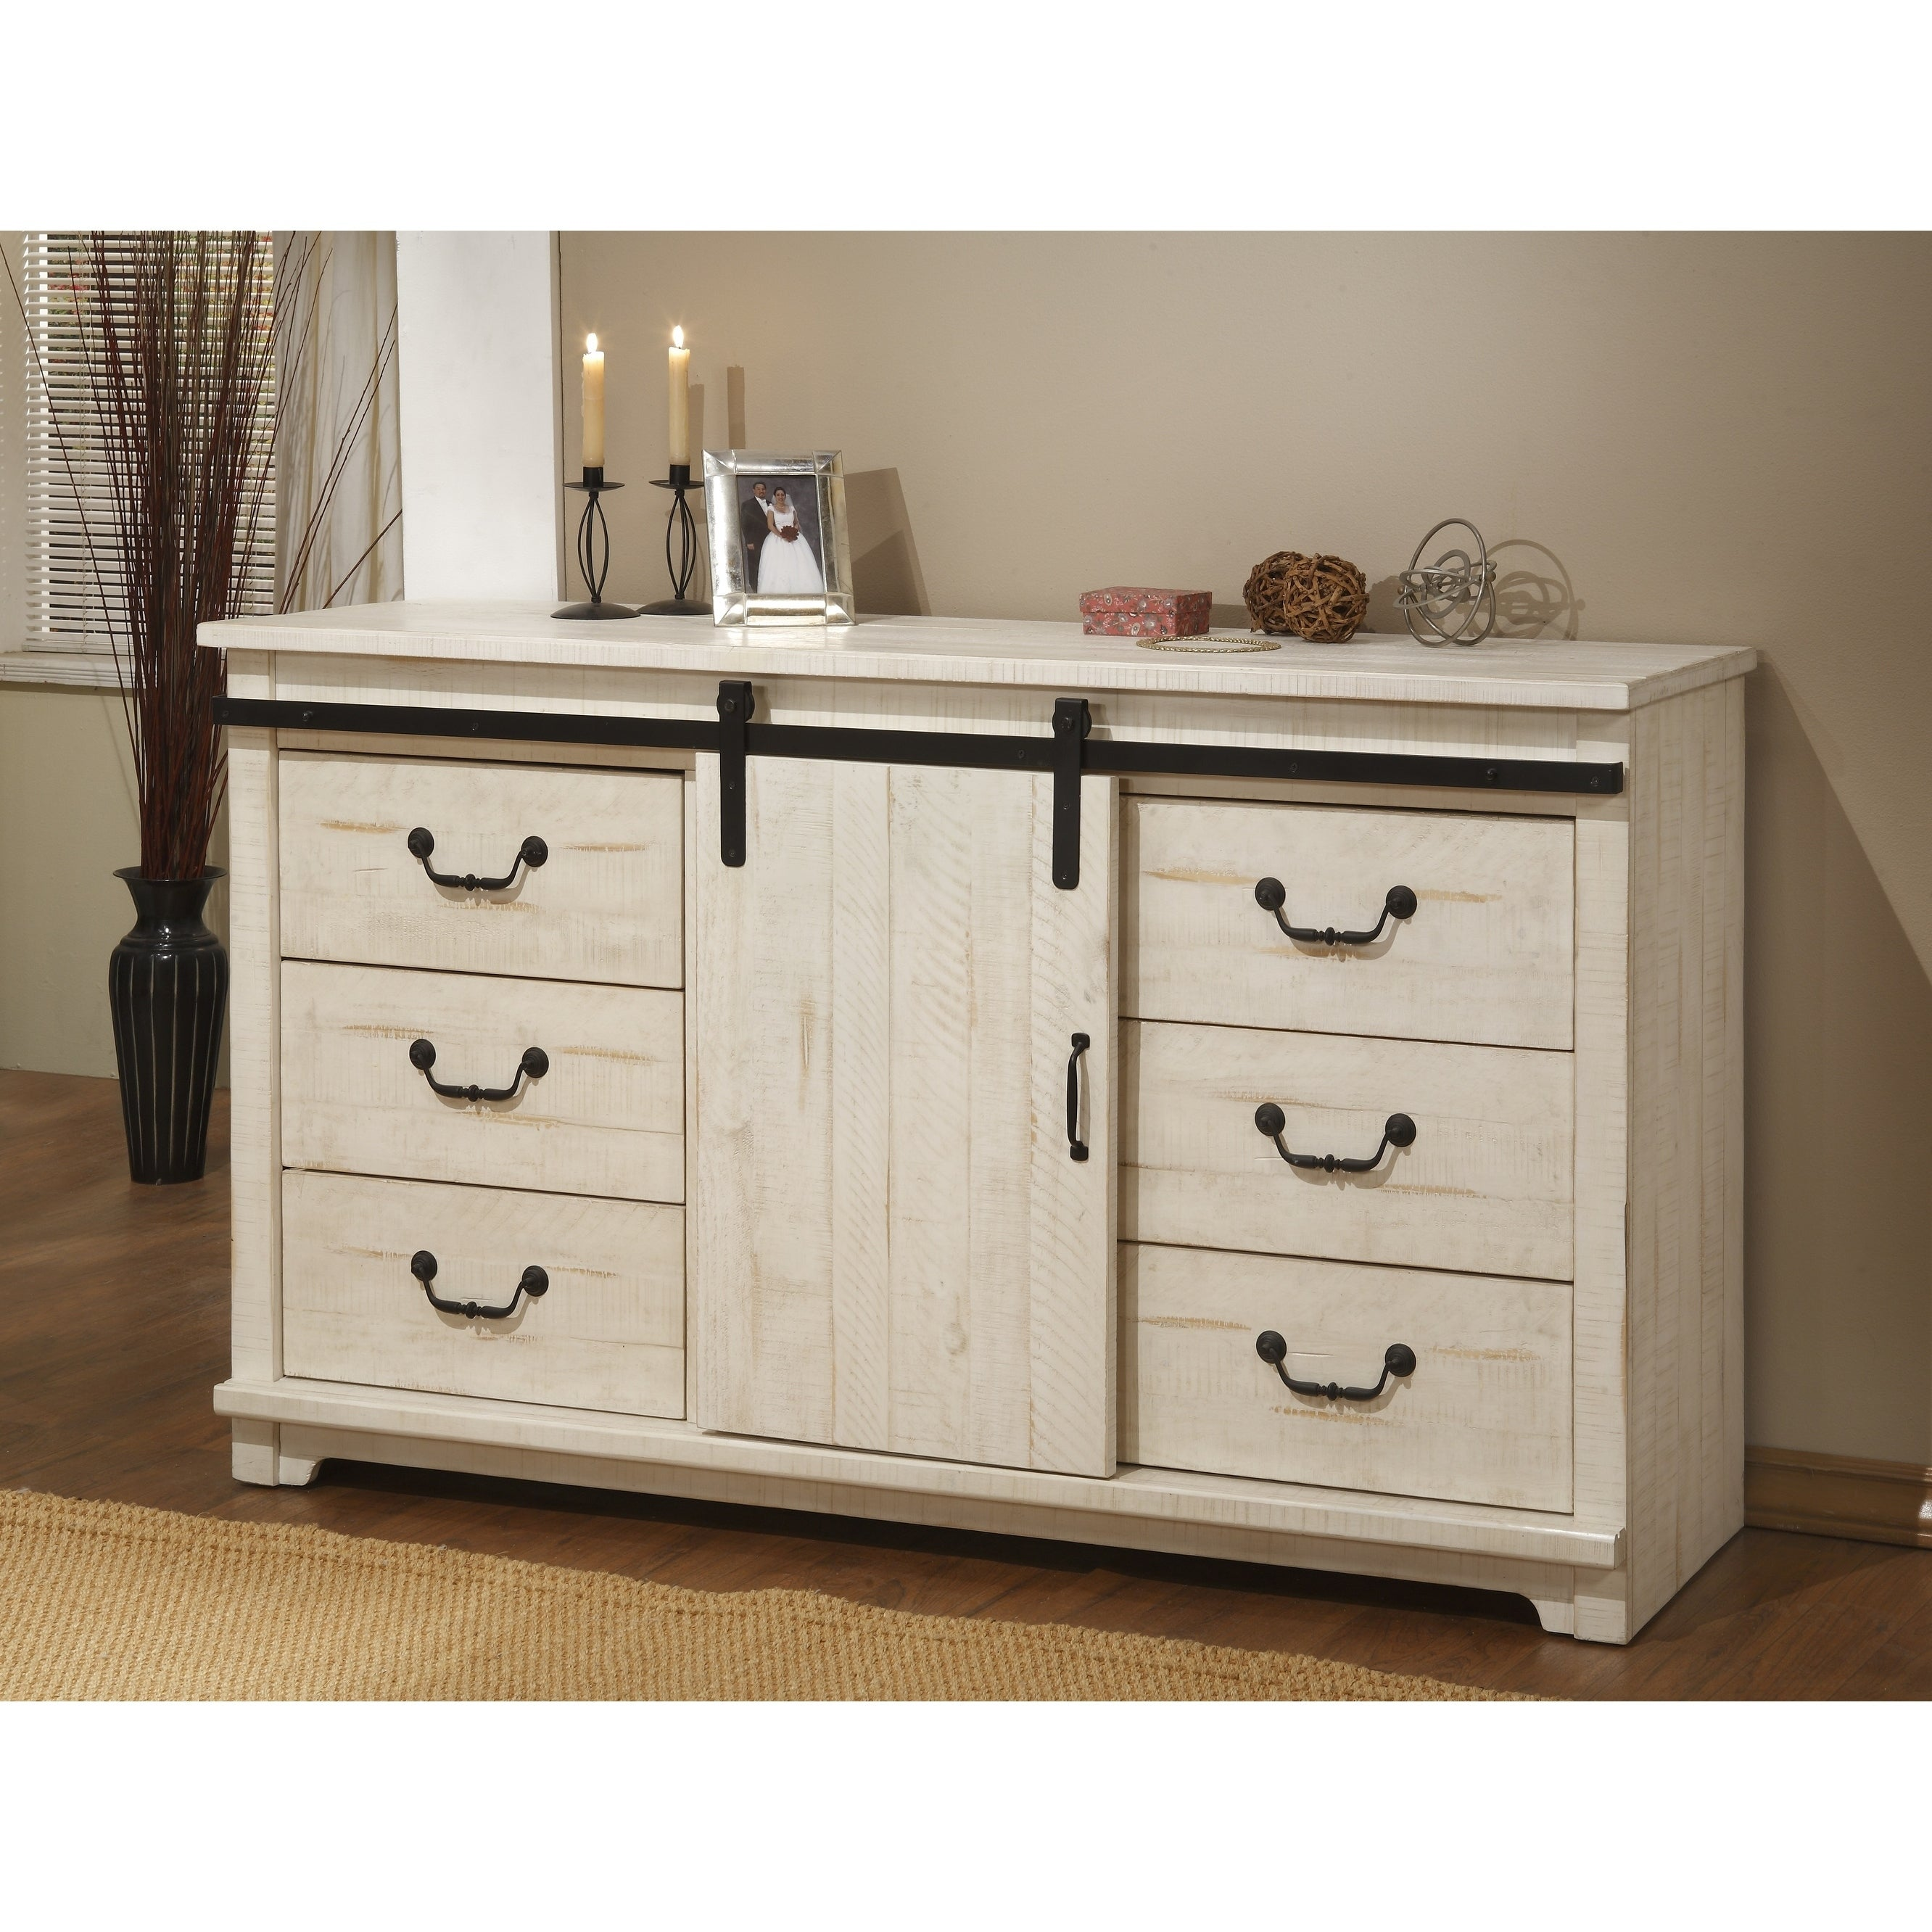 Coastal Farmhouse Solid Wood 9 Drawer Dresser With Sliding Barn Door Antique White On Free Shipping Today 22277336